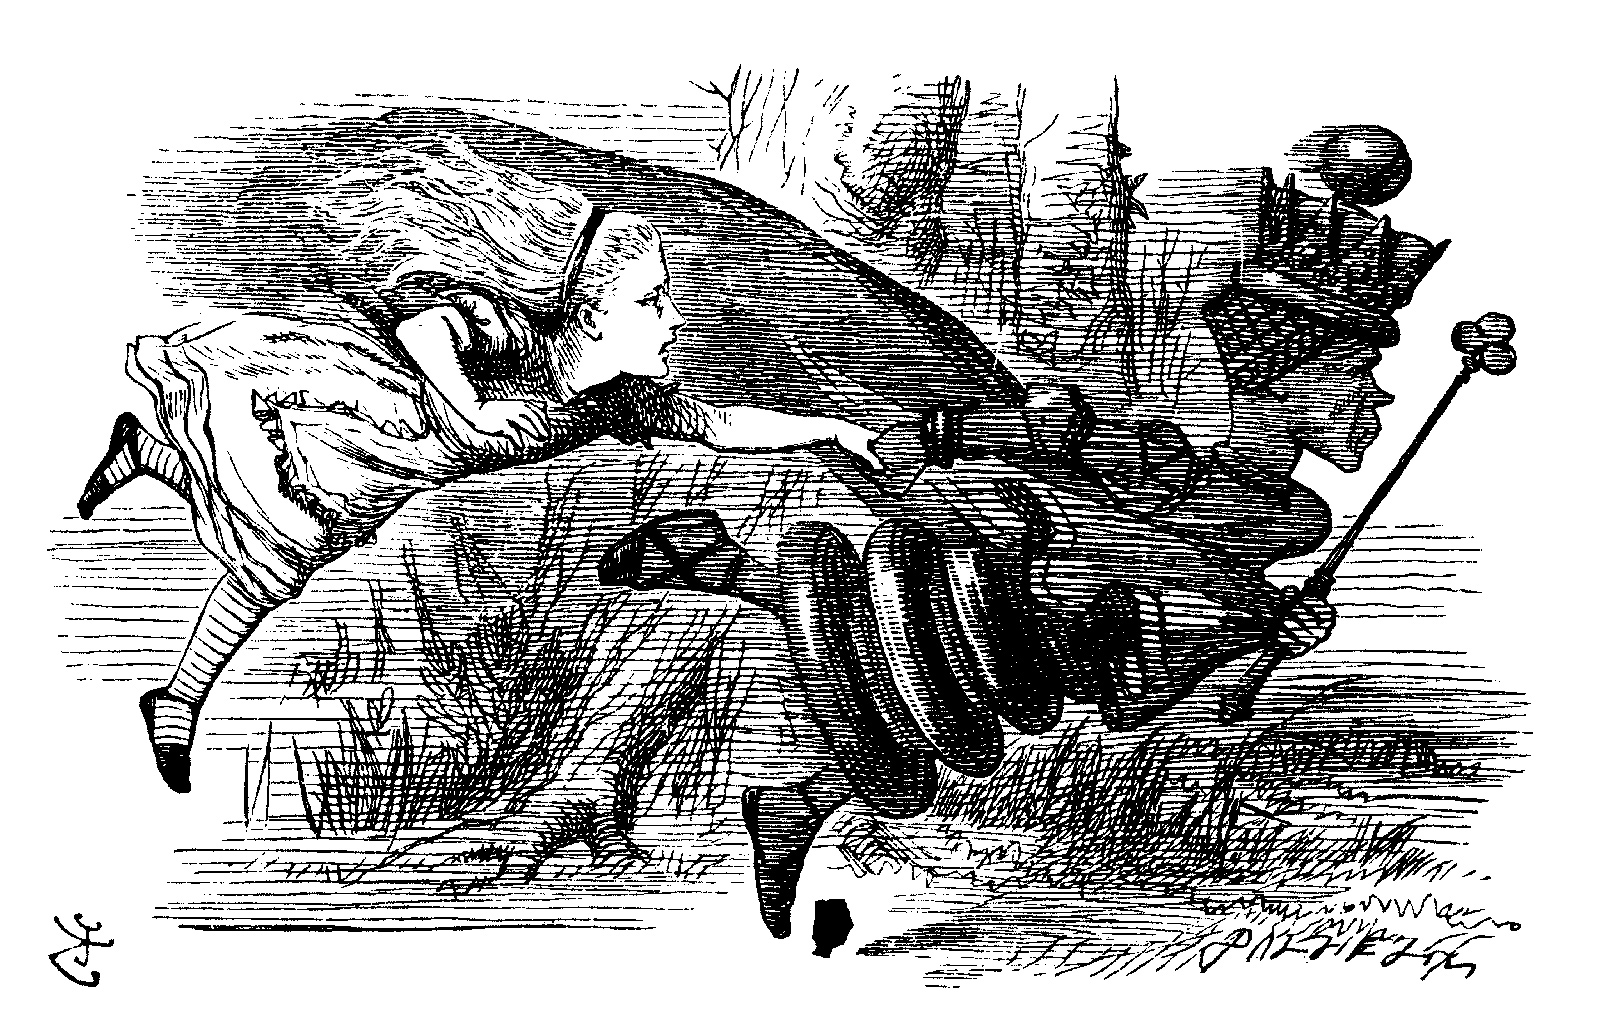 Alice and the Red Queen; illustration by John Tenniel from Lewis Carroll's Through the Looking-Glass, 1872